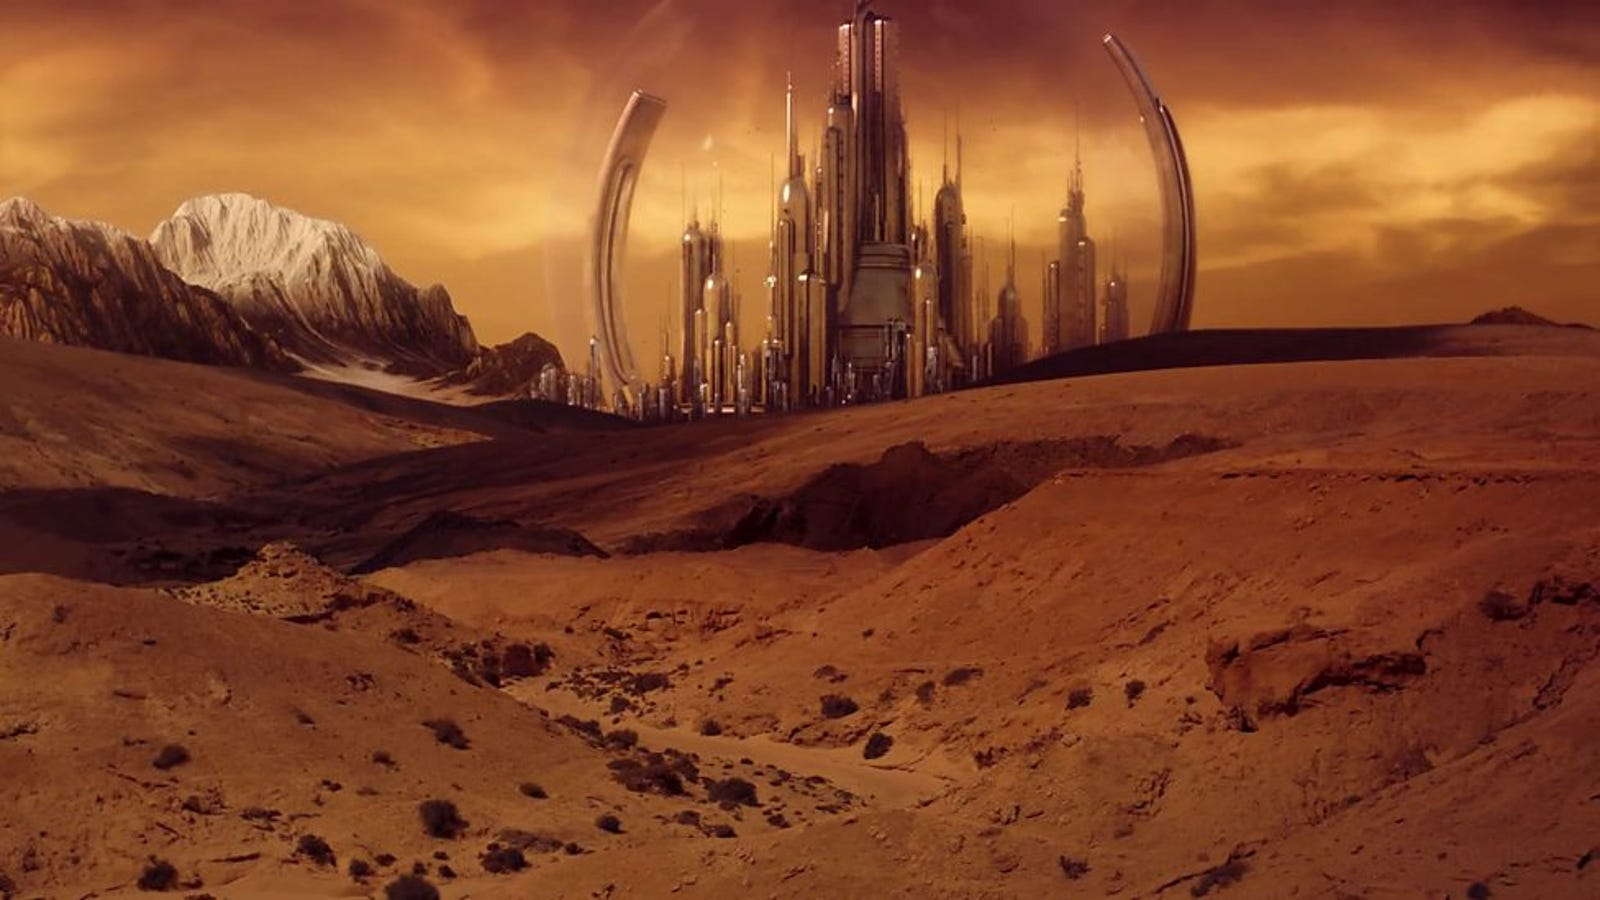 Doctor Who's Gallifrey Would Be a Nightmarishly Awful Place to Live